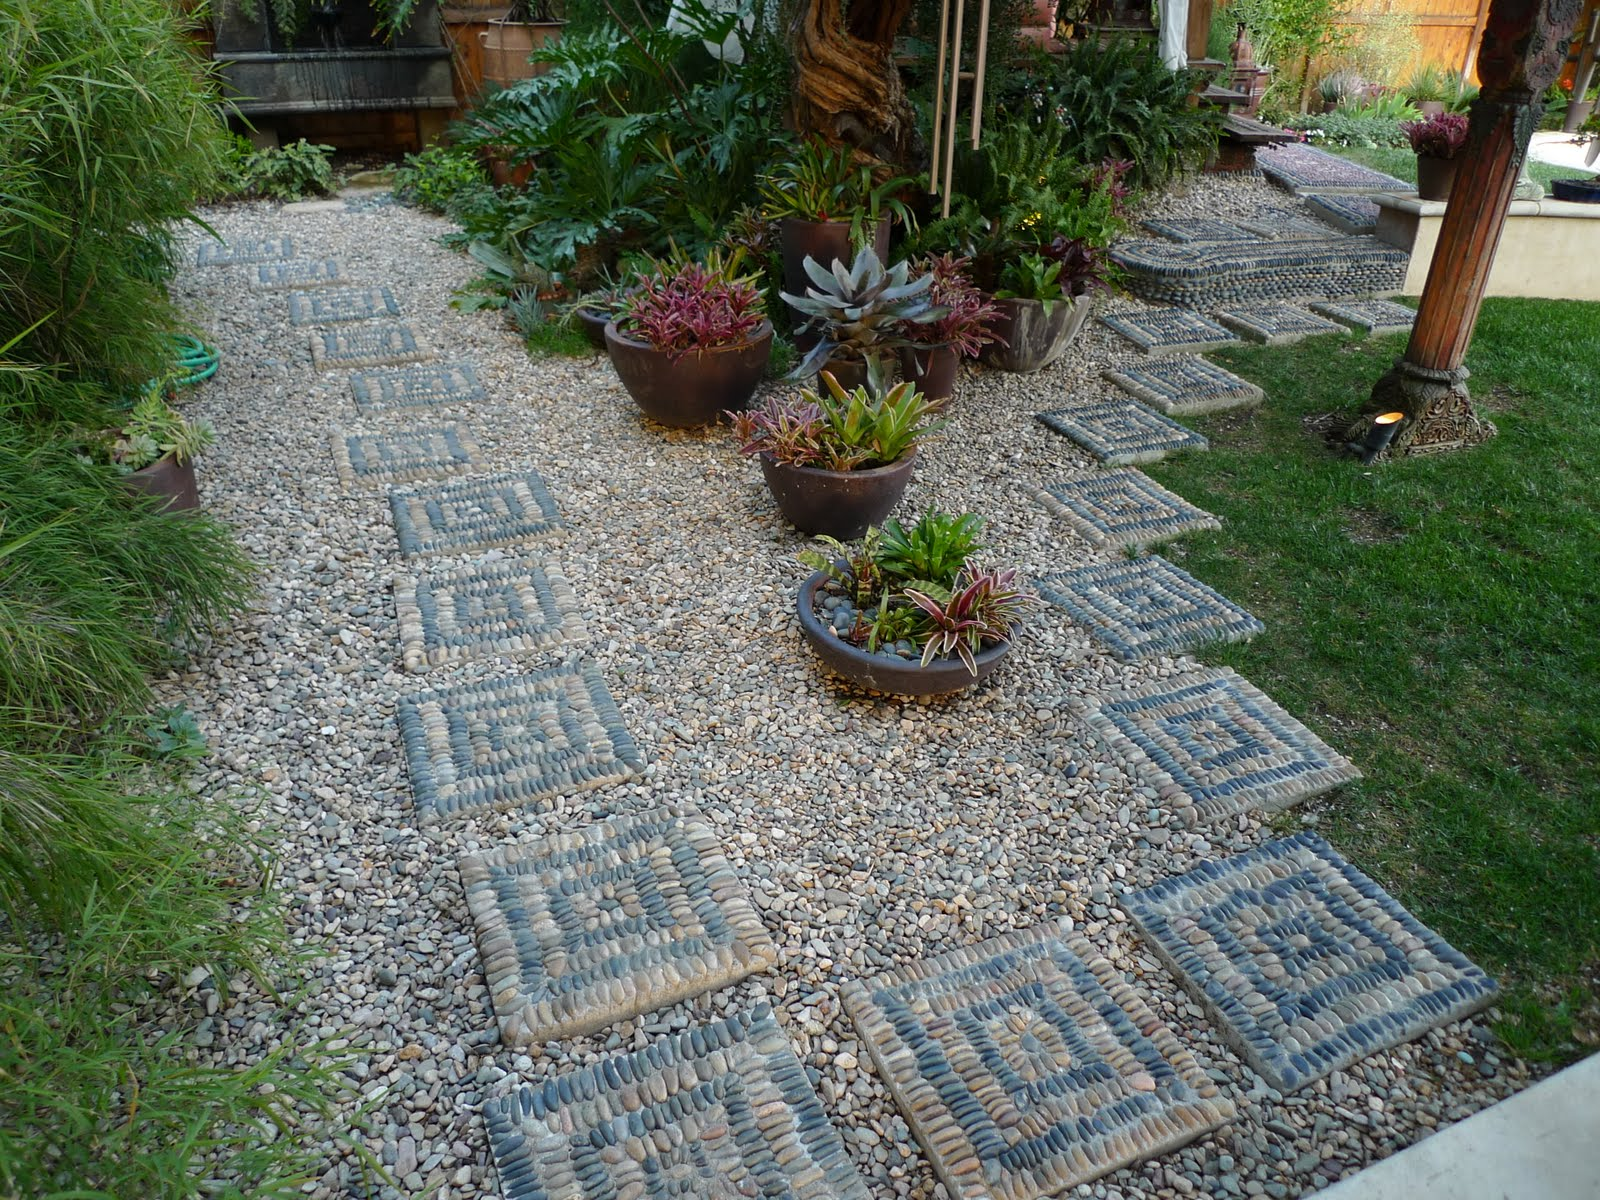 Garden Stepping Stones Ideas diy stepping stone projects page 6 of 13 Jeffrey Bales World Of Gardens Building A Pebble Mosaic Stepping